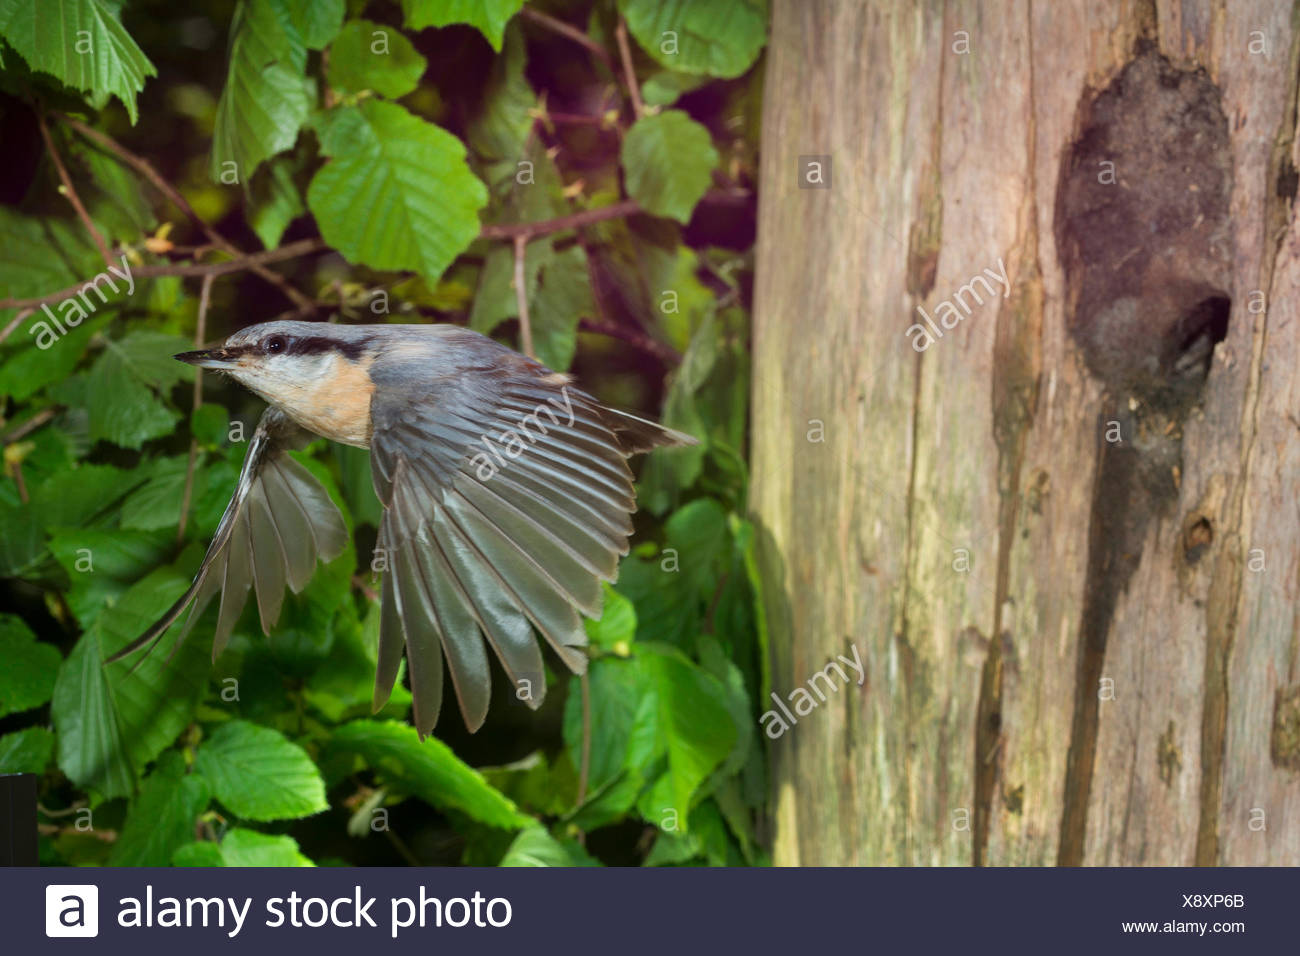 Eurasian nuthatch (Sitta europaea), taking off the breeding cave, entrance was made by the bird smaller with clay, Germany, North Rhine-Westphalia - Stock Image